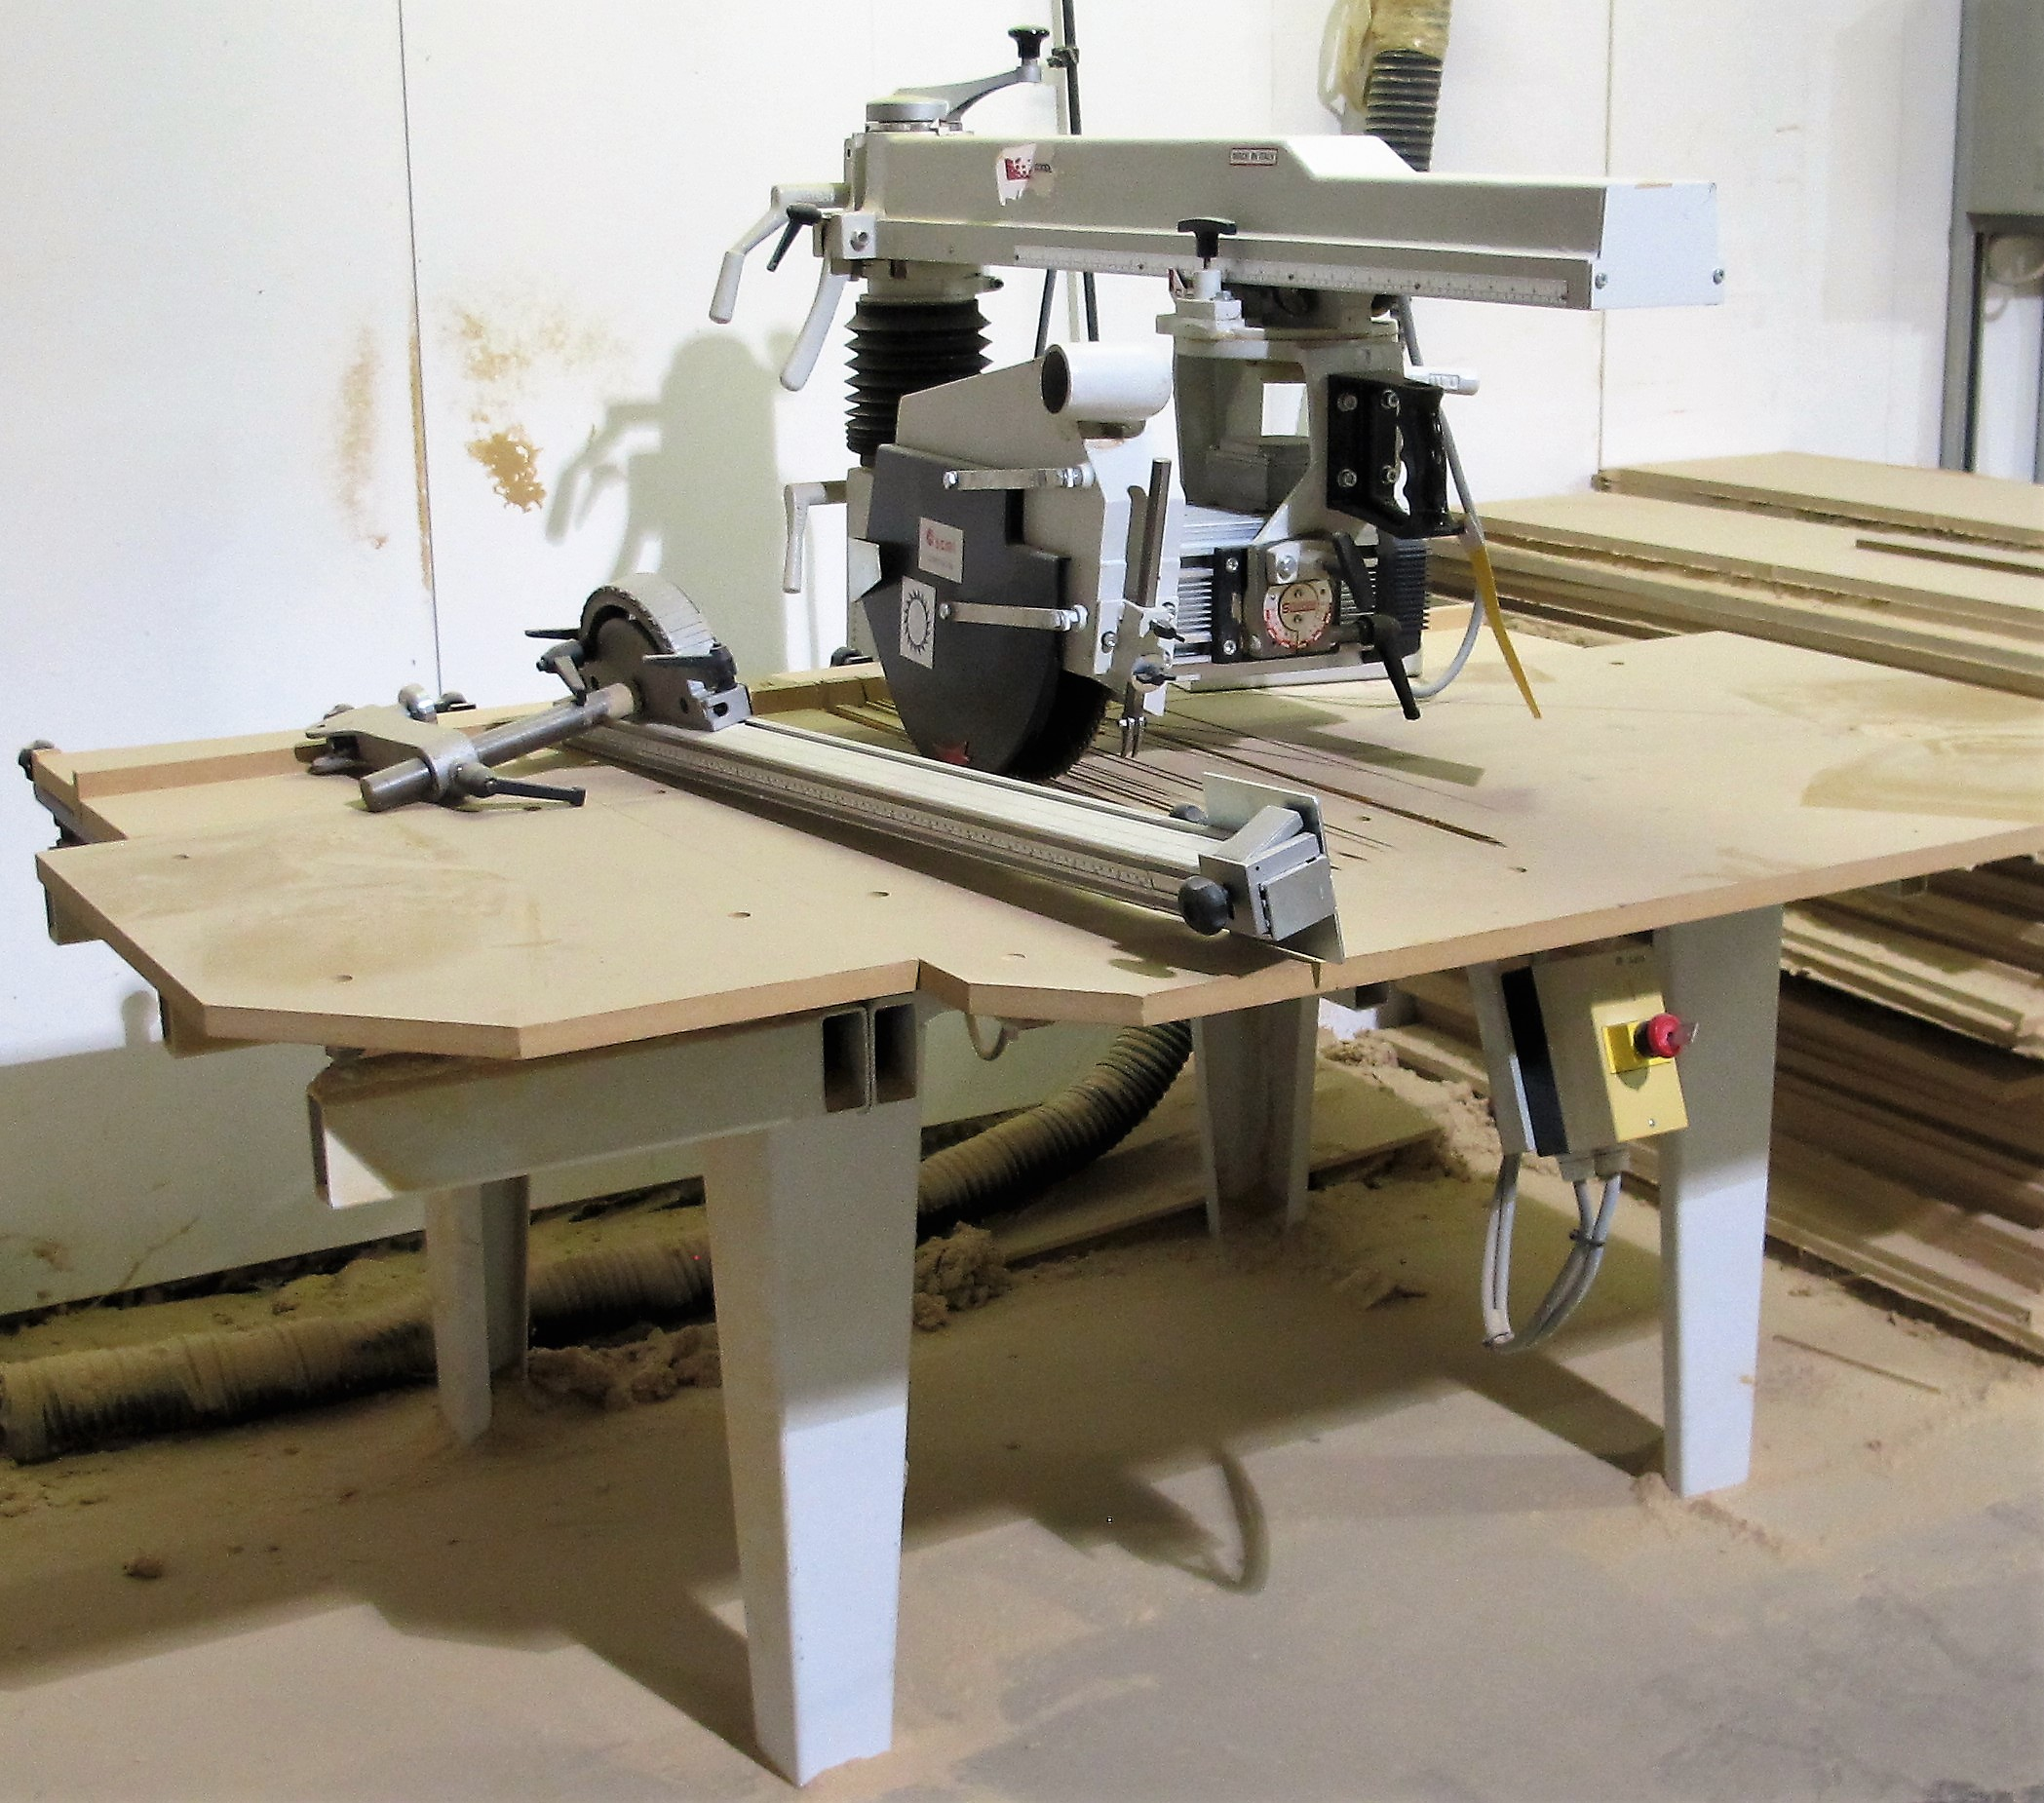 Lot 14 - 2001 SCMI RS 750 RADIAL ARM SAW, S/N 210899, 3,400 RPM